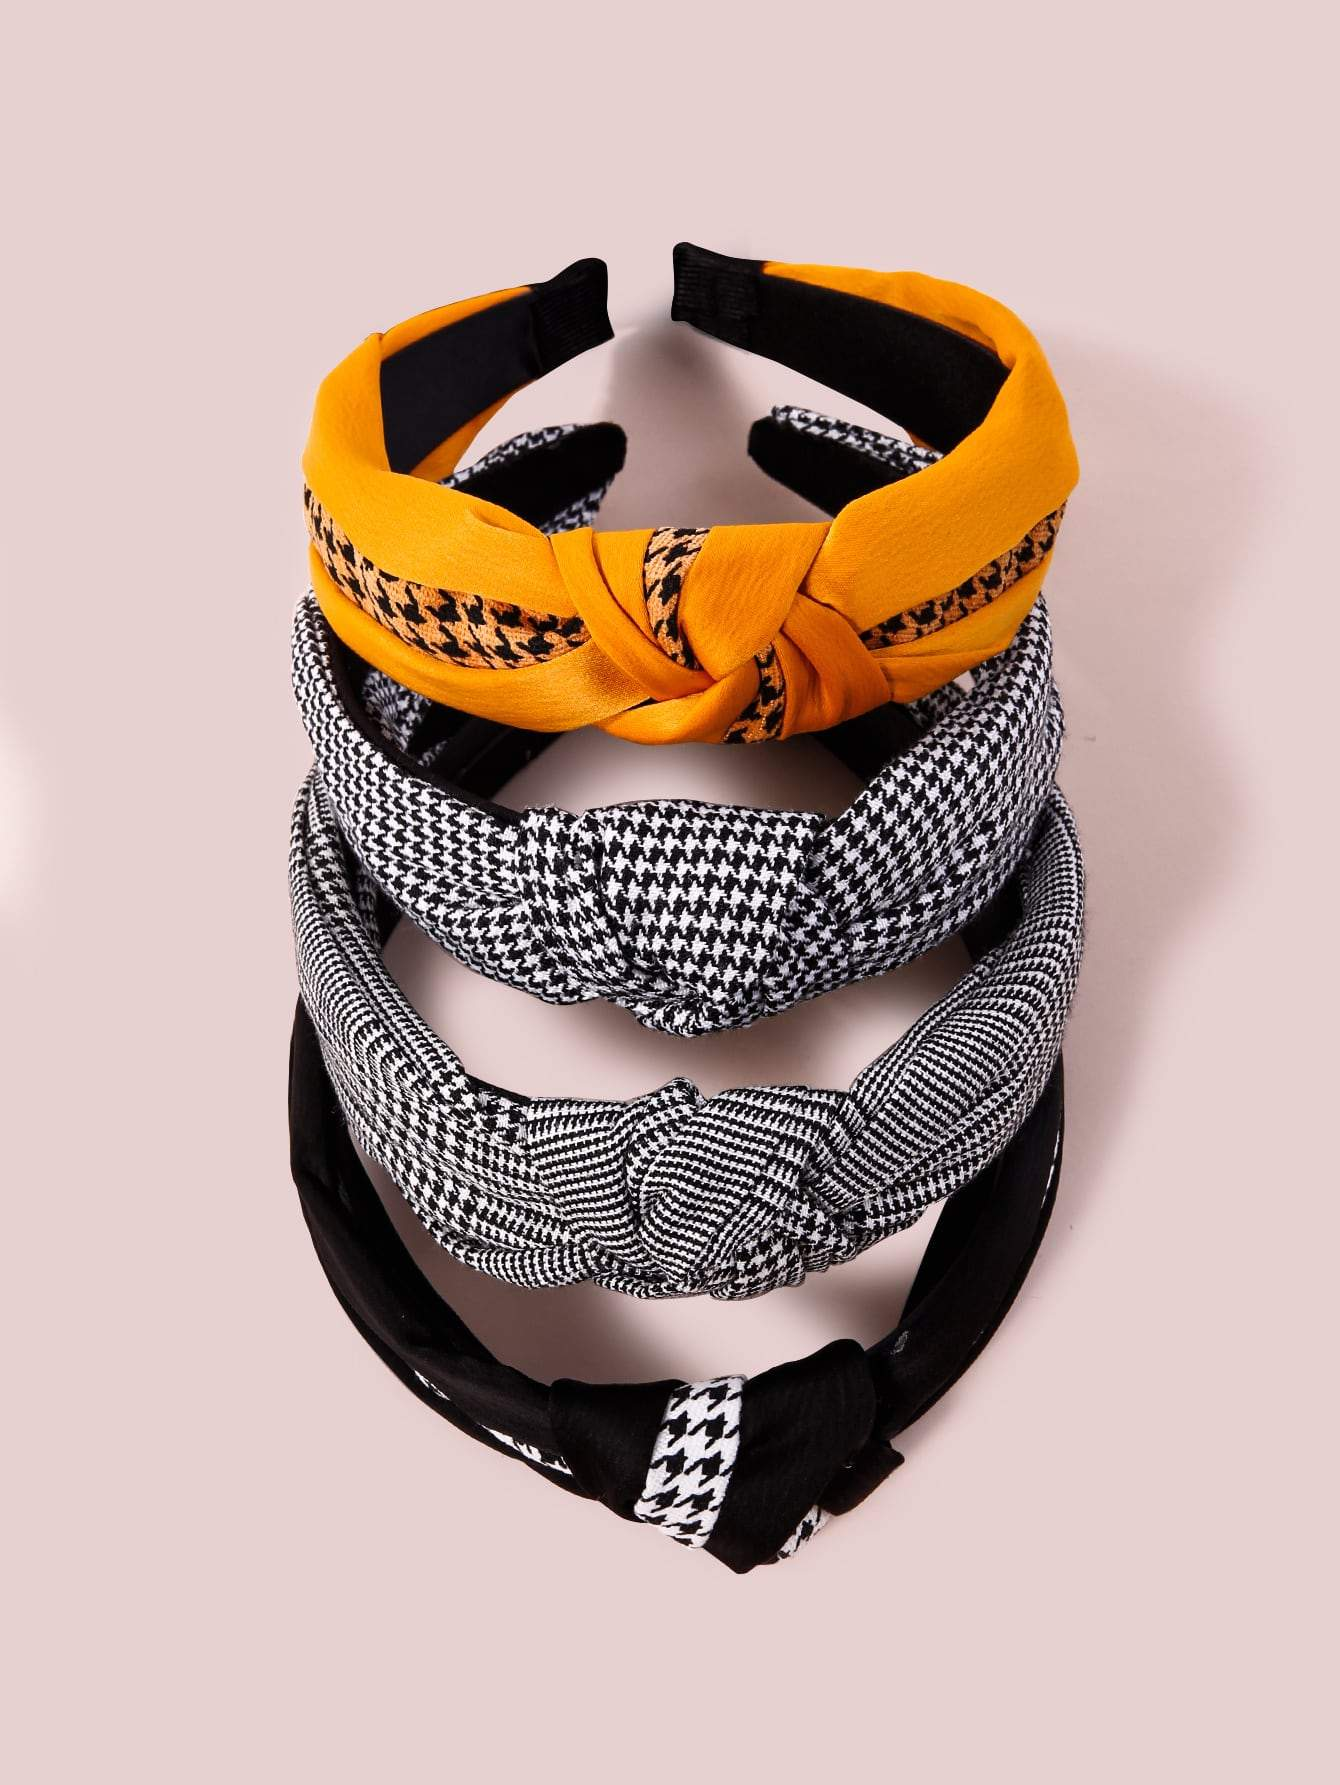 4pcs Houndstooth Printed Hair Hoop Shop n Save Pakistan